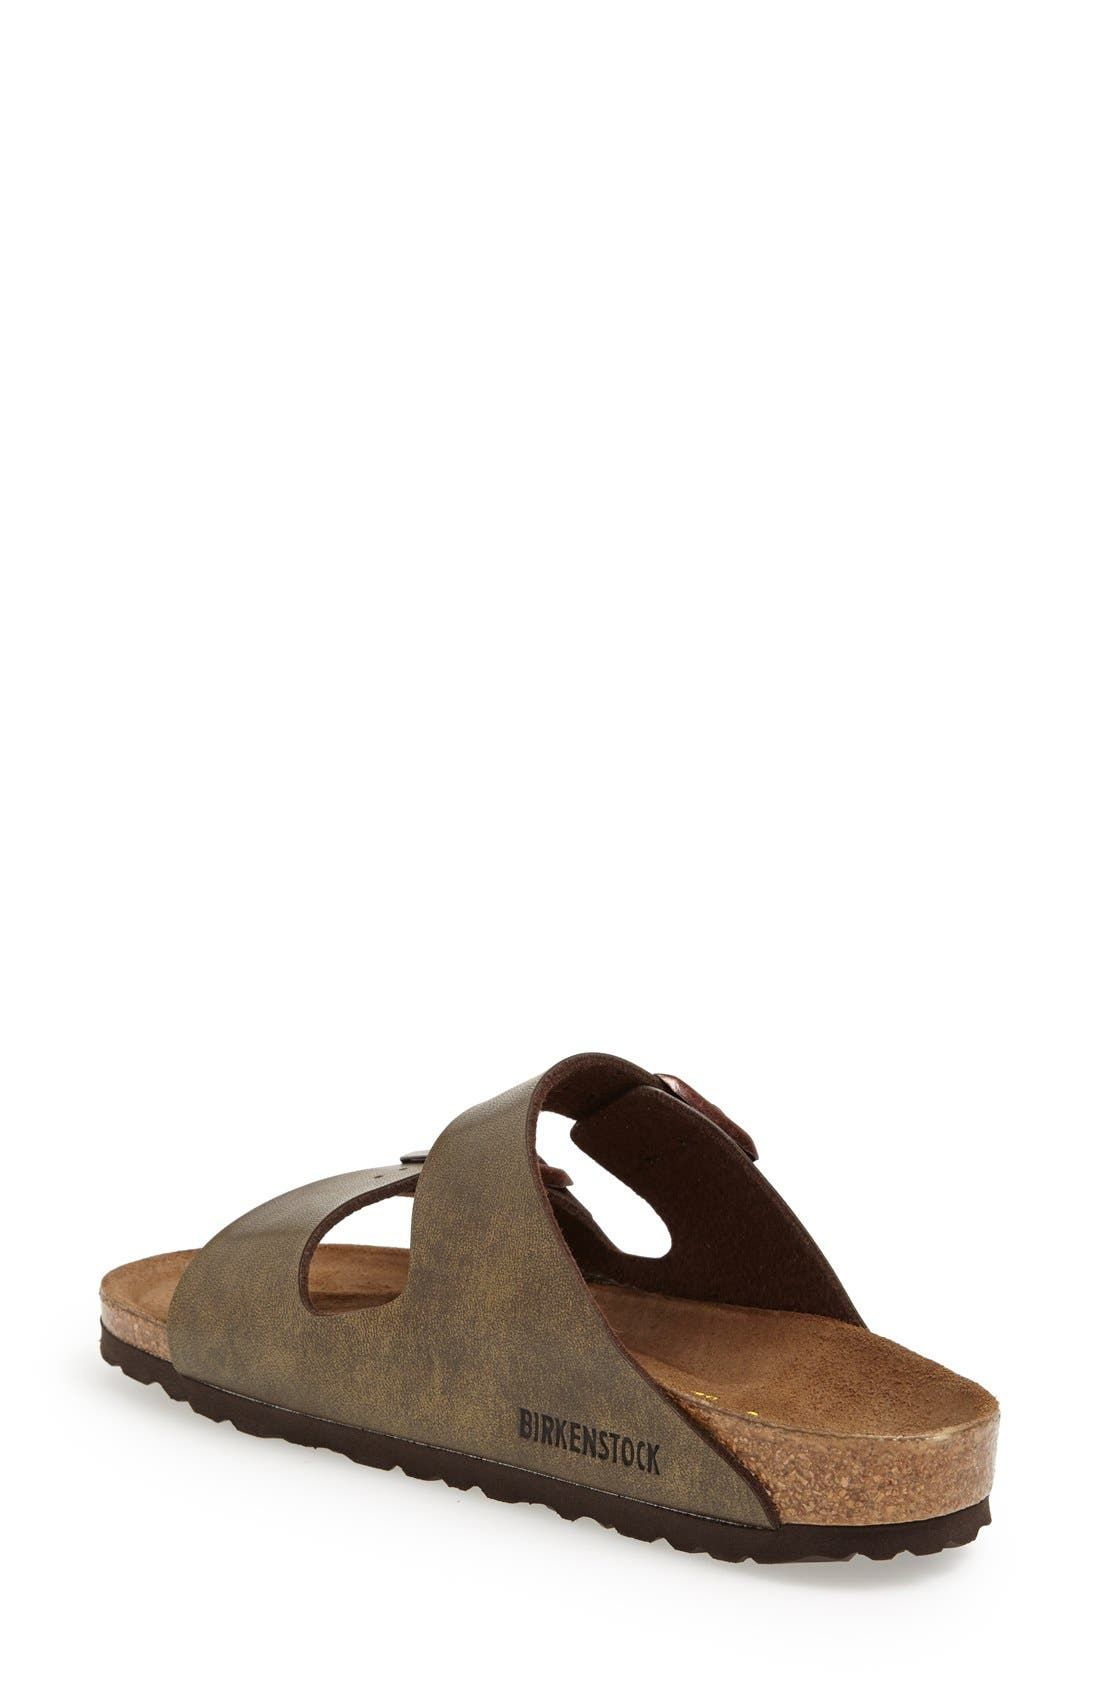 'Arizona Birko-Flor' Soft Footbed Sandal,                             Alternate thumbnail 6, color,